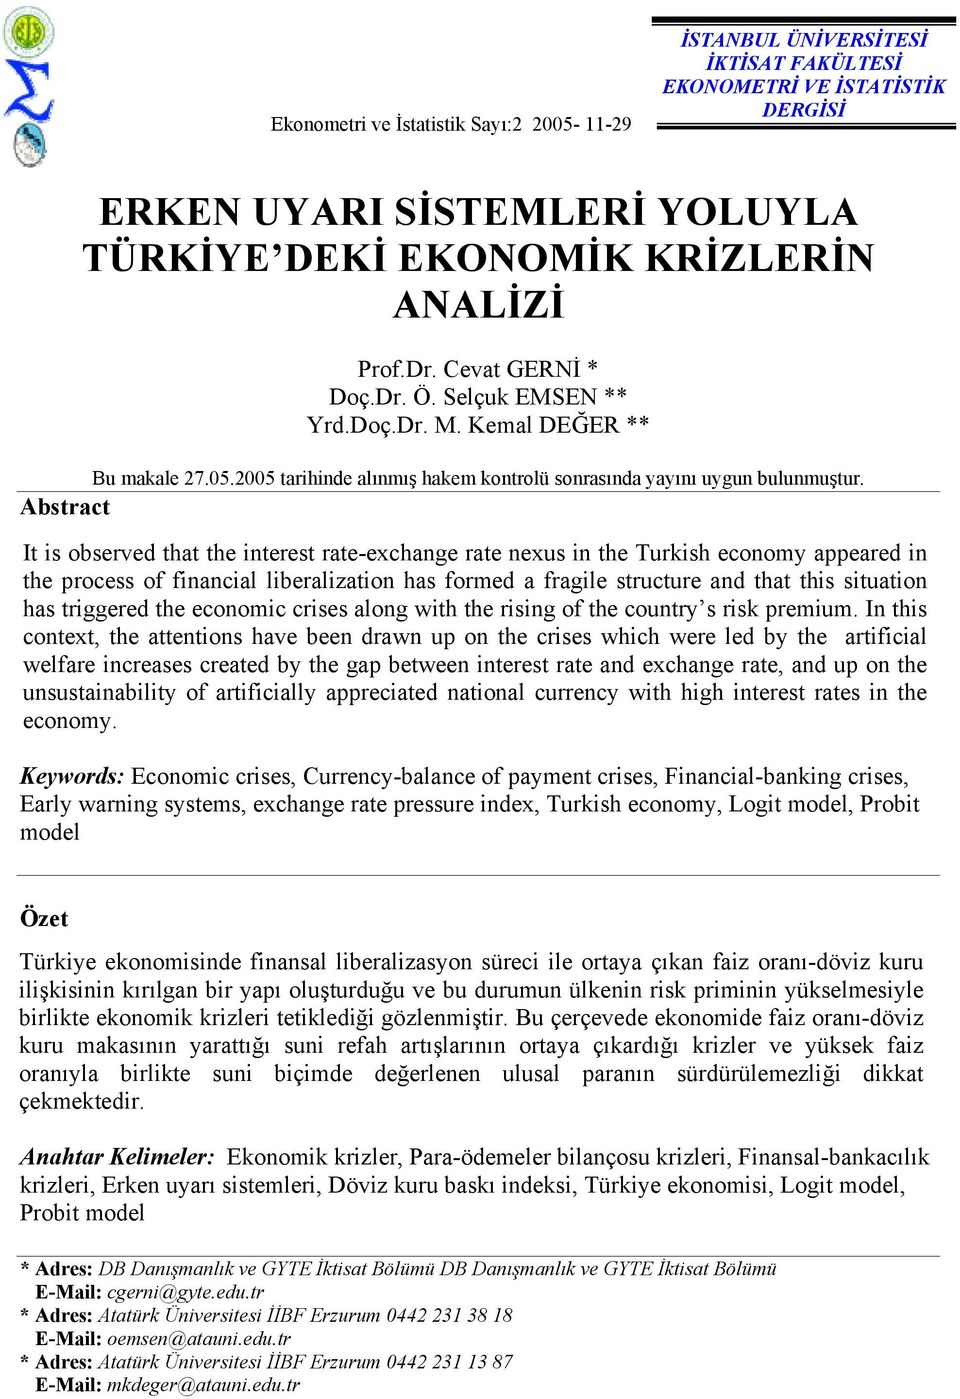 Abstract It is observed that the interest rate-exchange rate nexus in the Turkish economy appeared in the process of financial liberalization has formed a fragile structure and that this situation